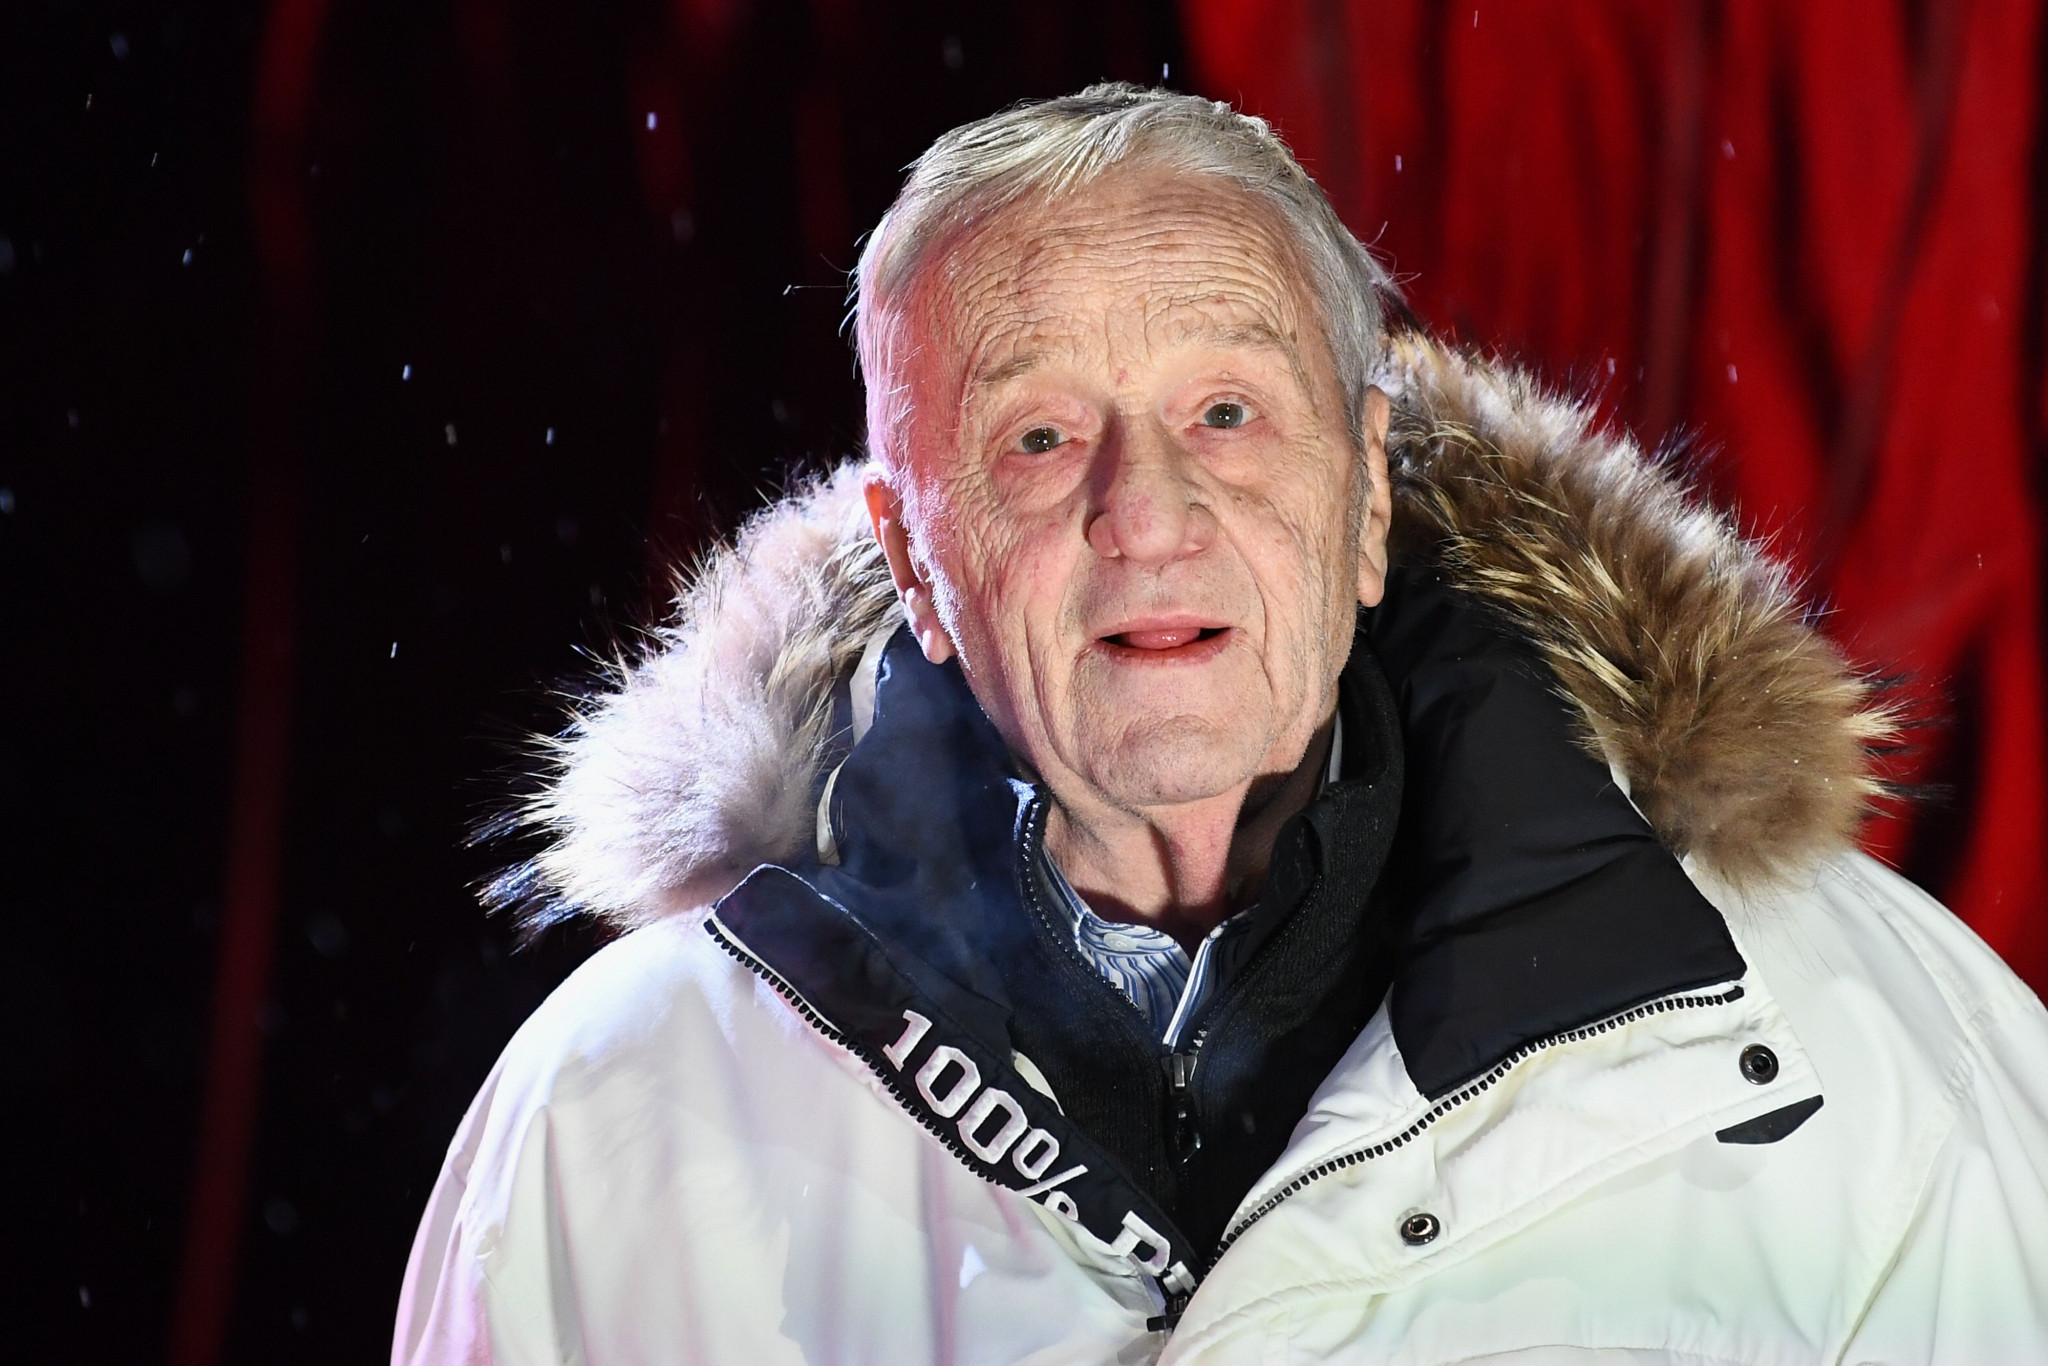 Protect our Winters is urging FIS President Gian-Franco Kasper to step aside after he spoke of